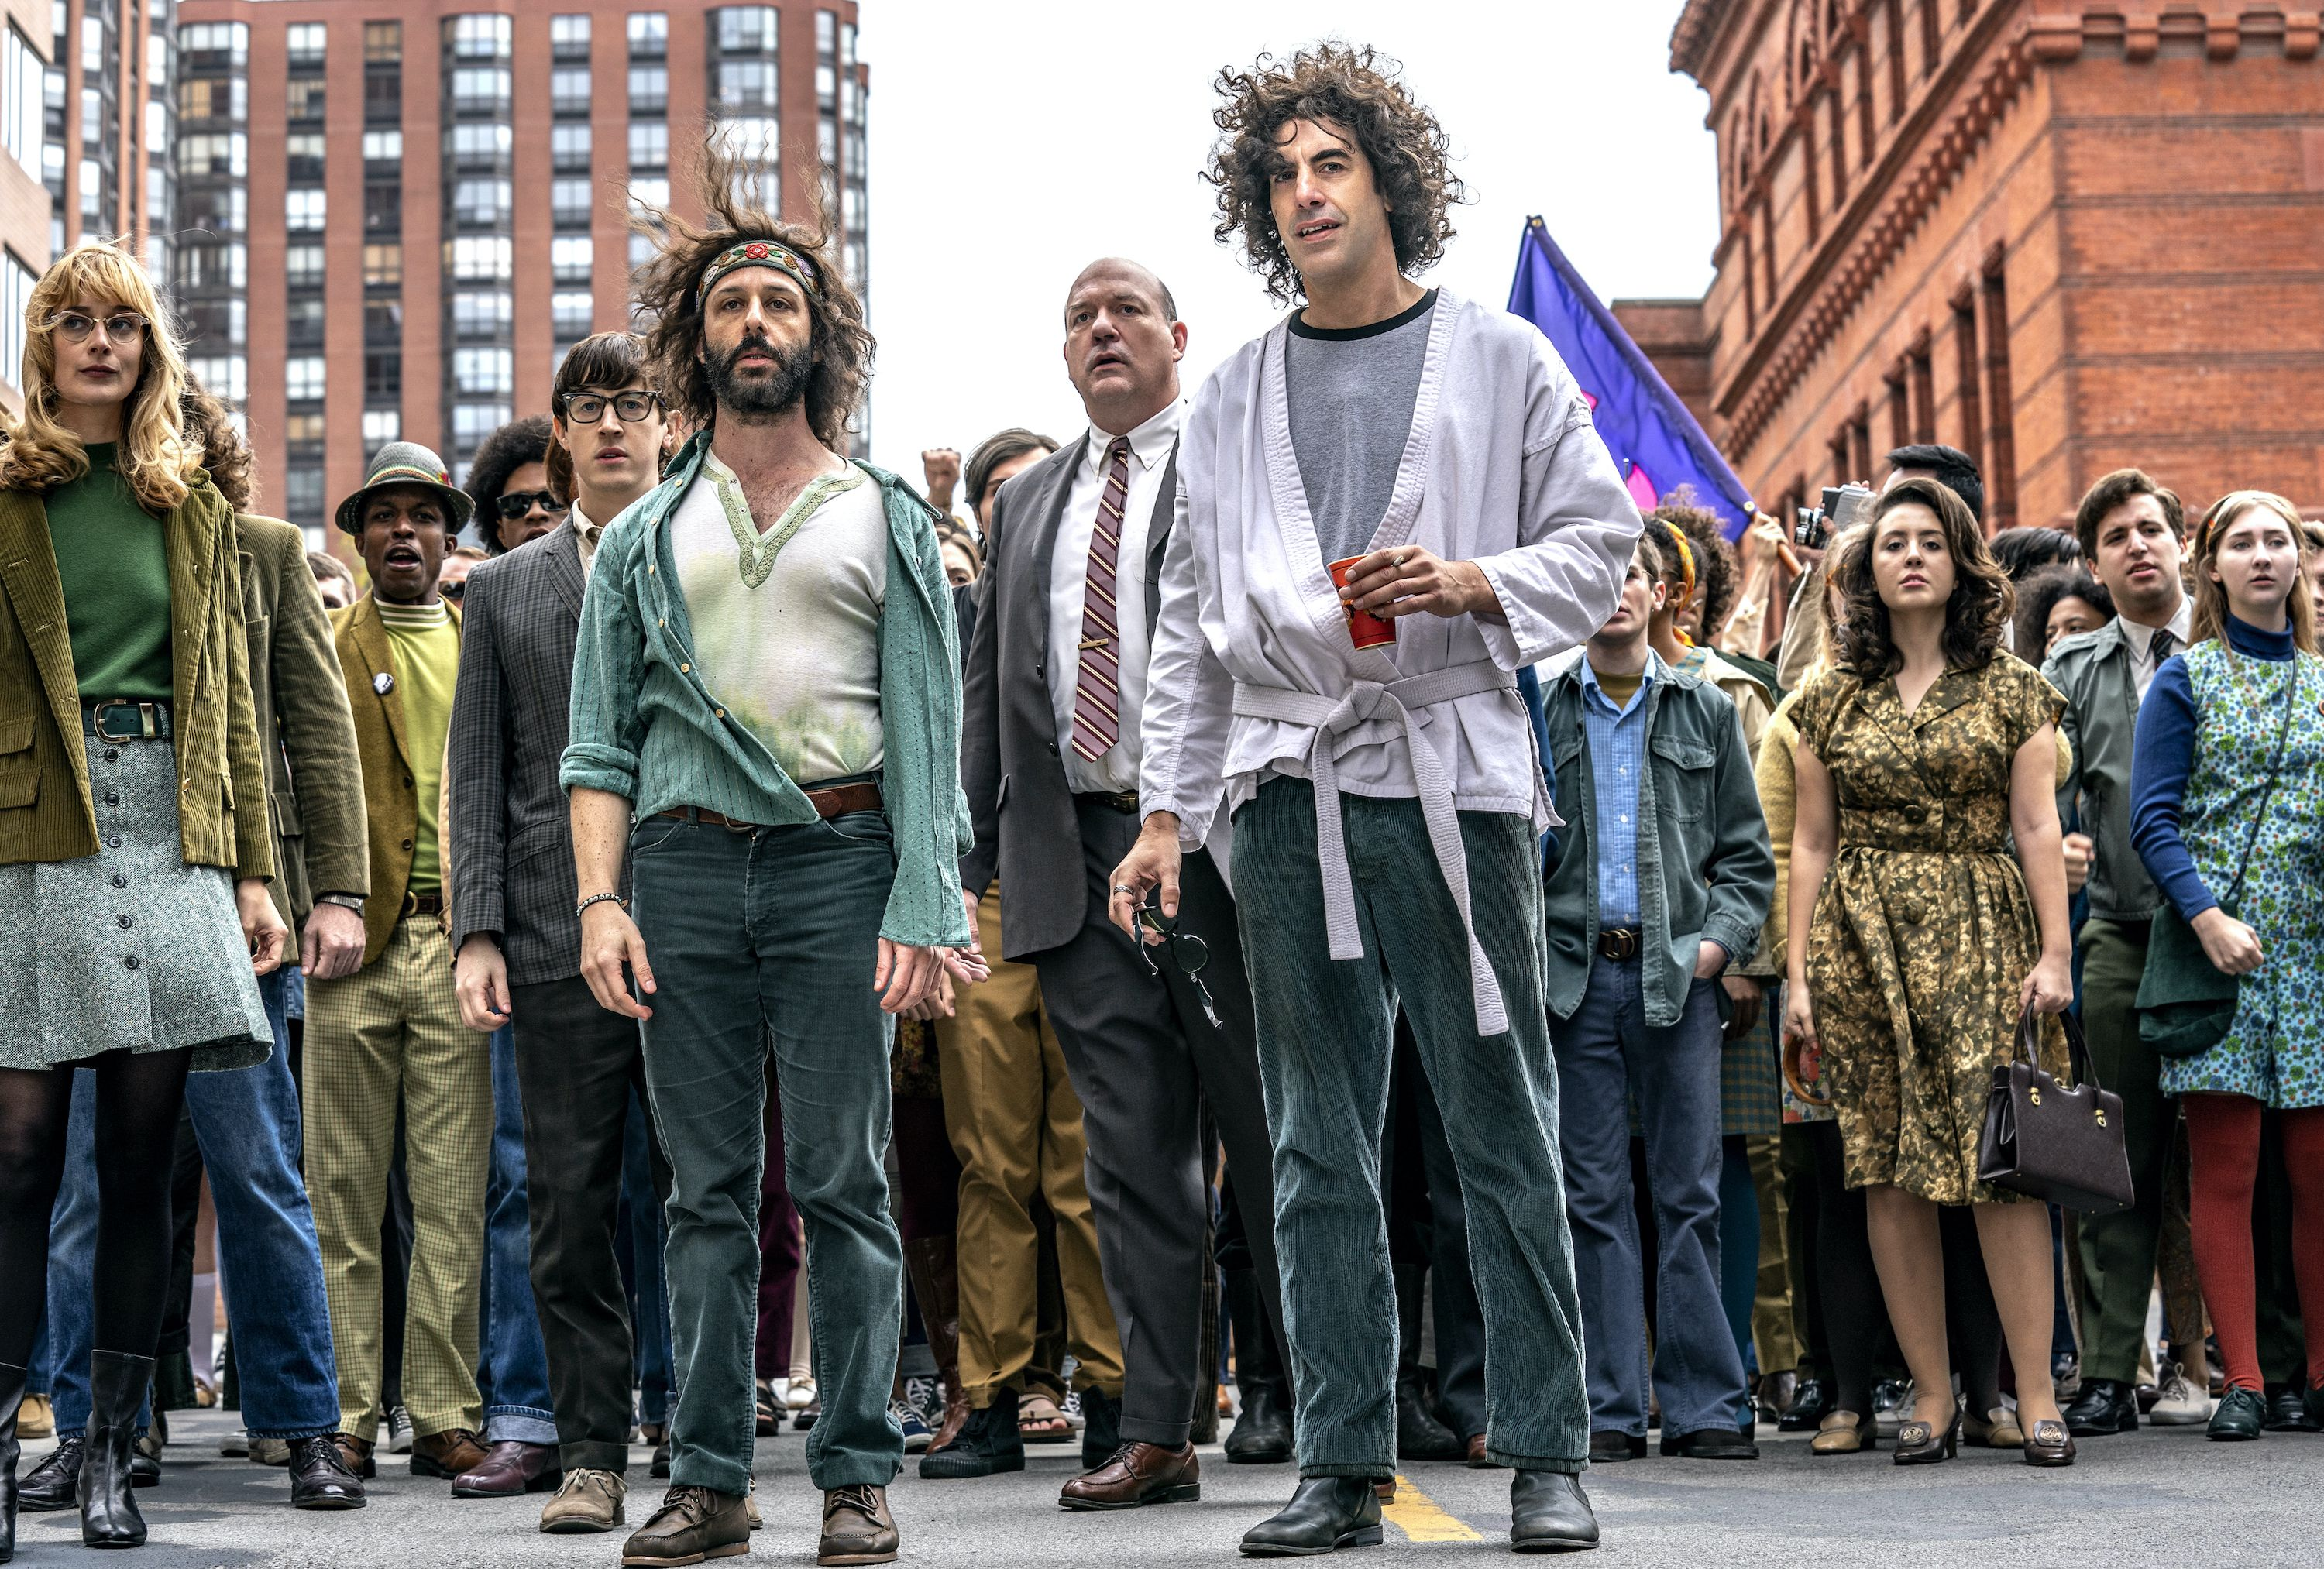 """Film Review: """"The Trial of the Chicago 7"""" Gets Two Hits - Fullerton Observer"""